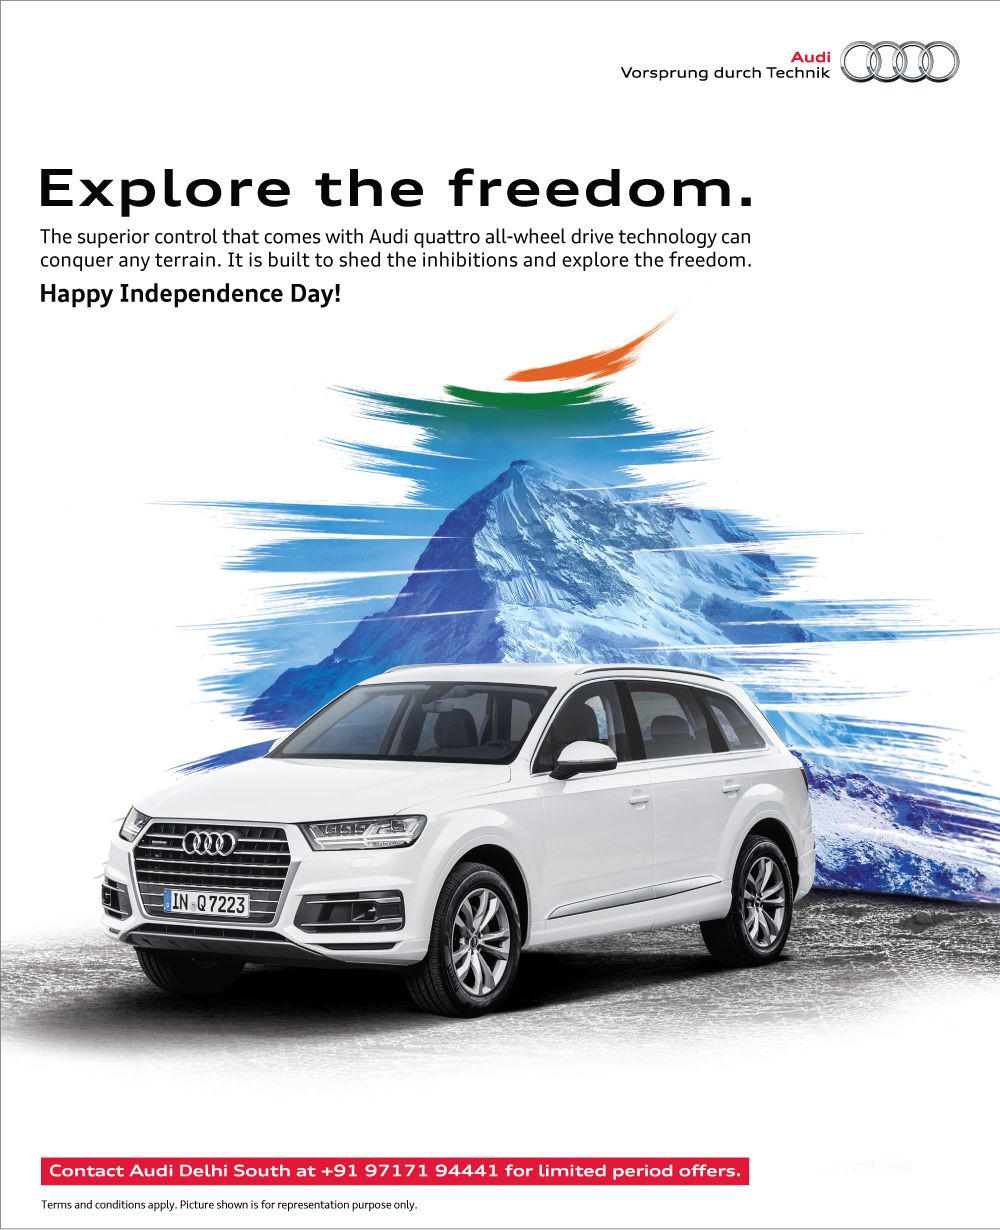 Audi Delhi South Wishes You All A Happy Independence Day Audi - Day audi